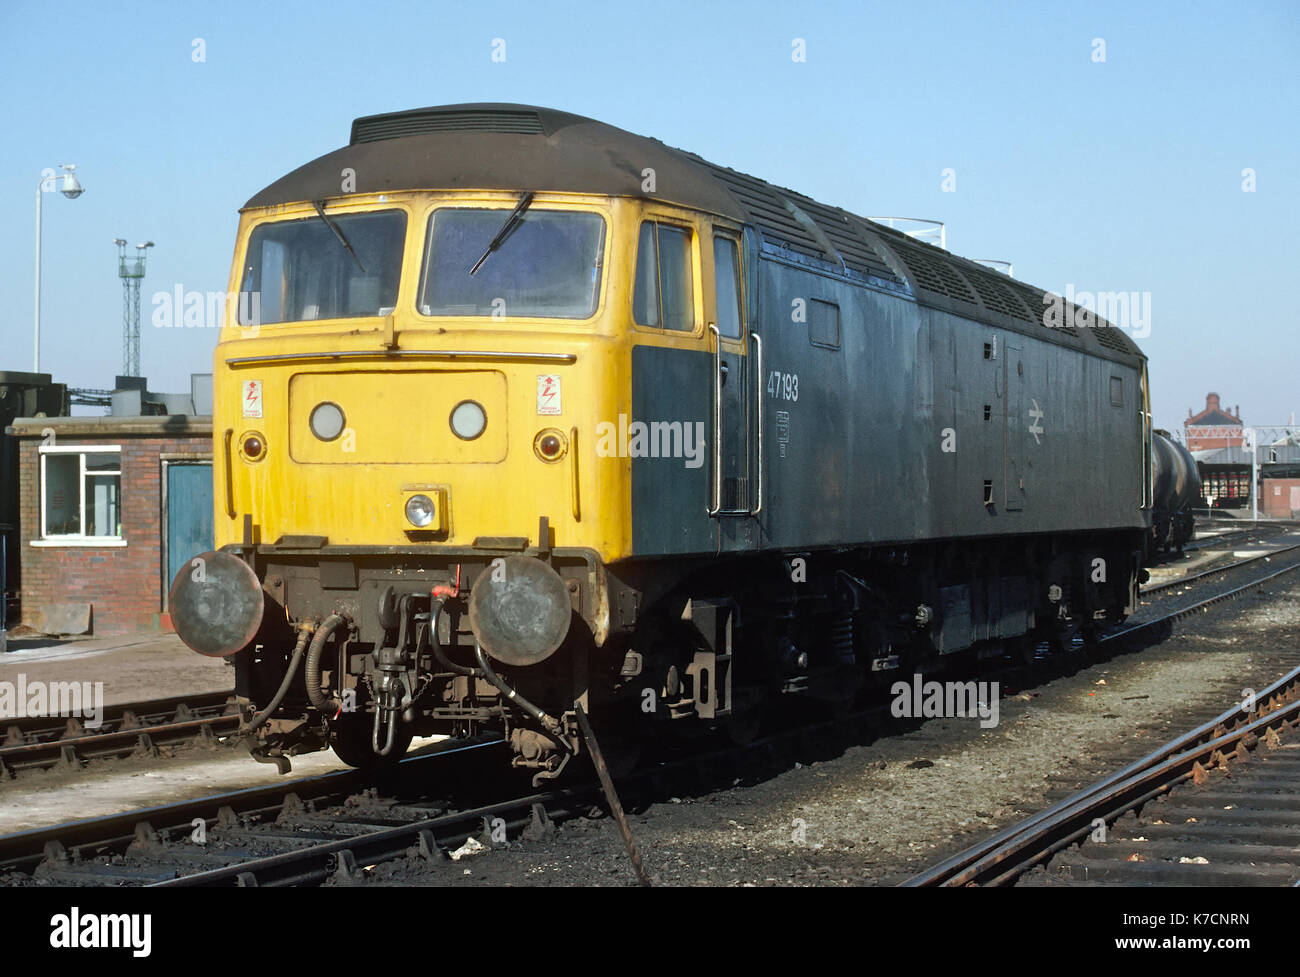 Railway 1986 stock photos railway 1986 stock images alamy for Depot bergedorf